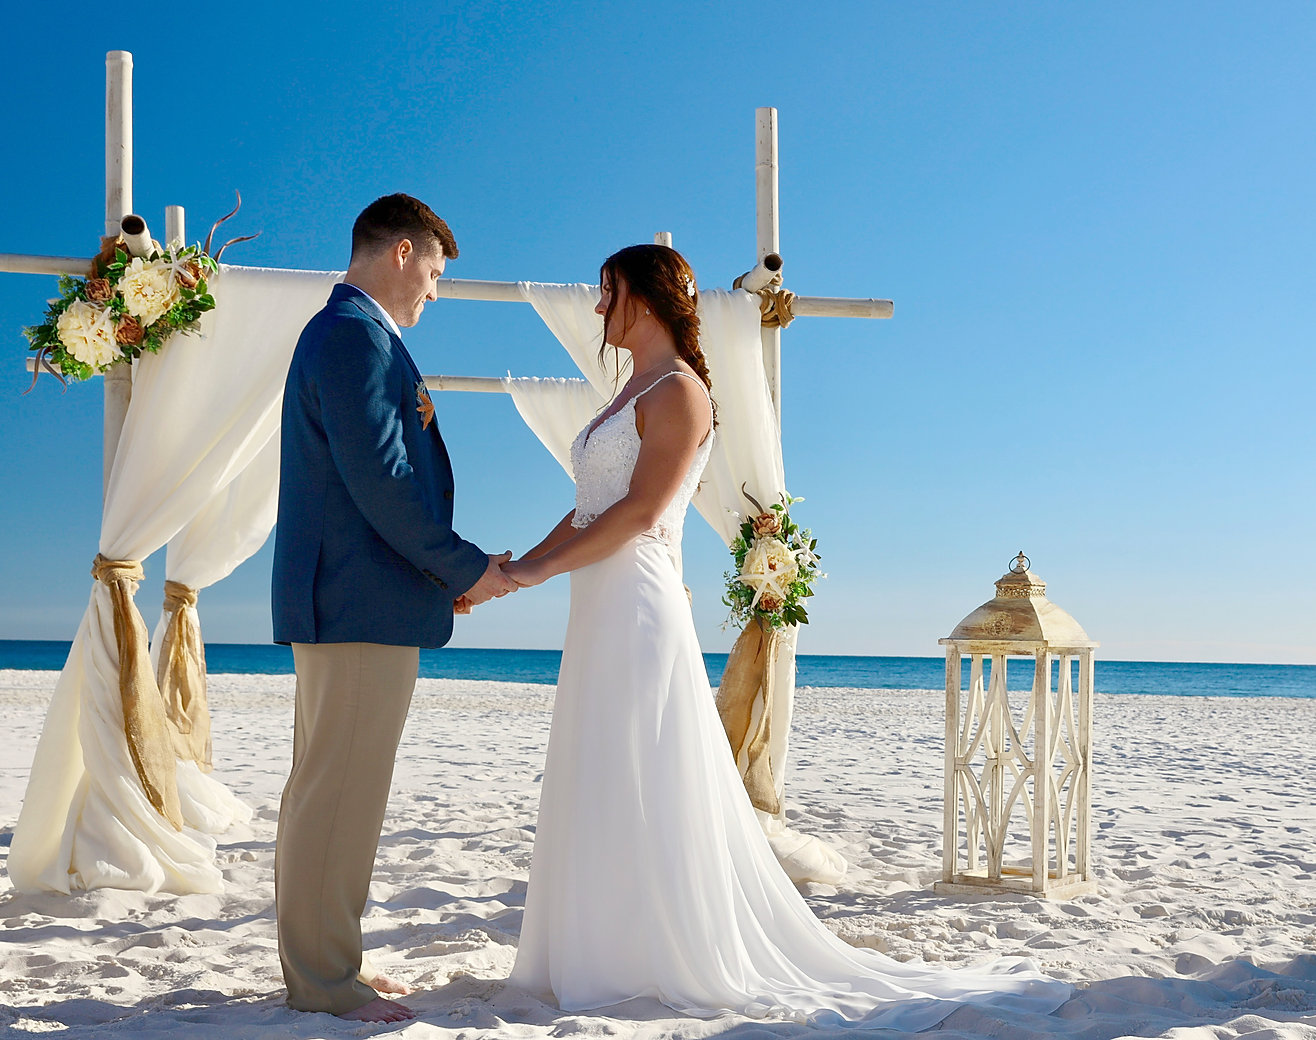 beach-wedding-the-one-i-love.jpg